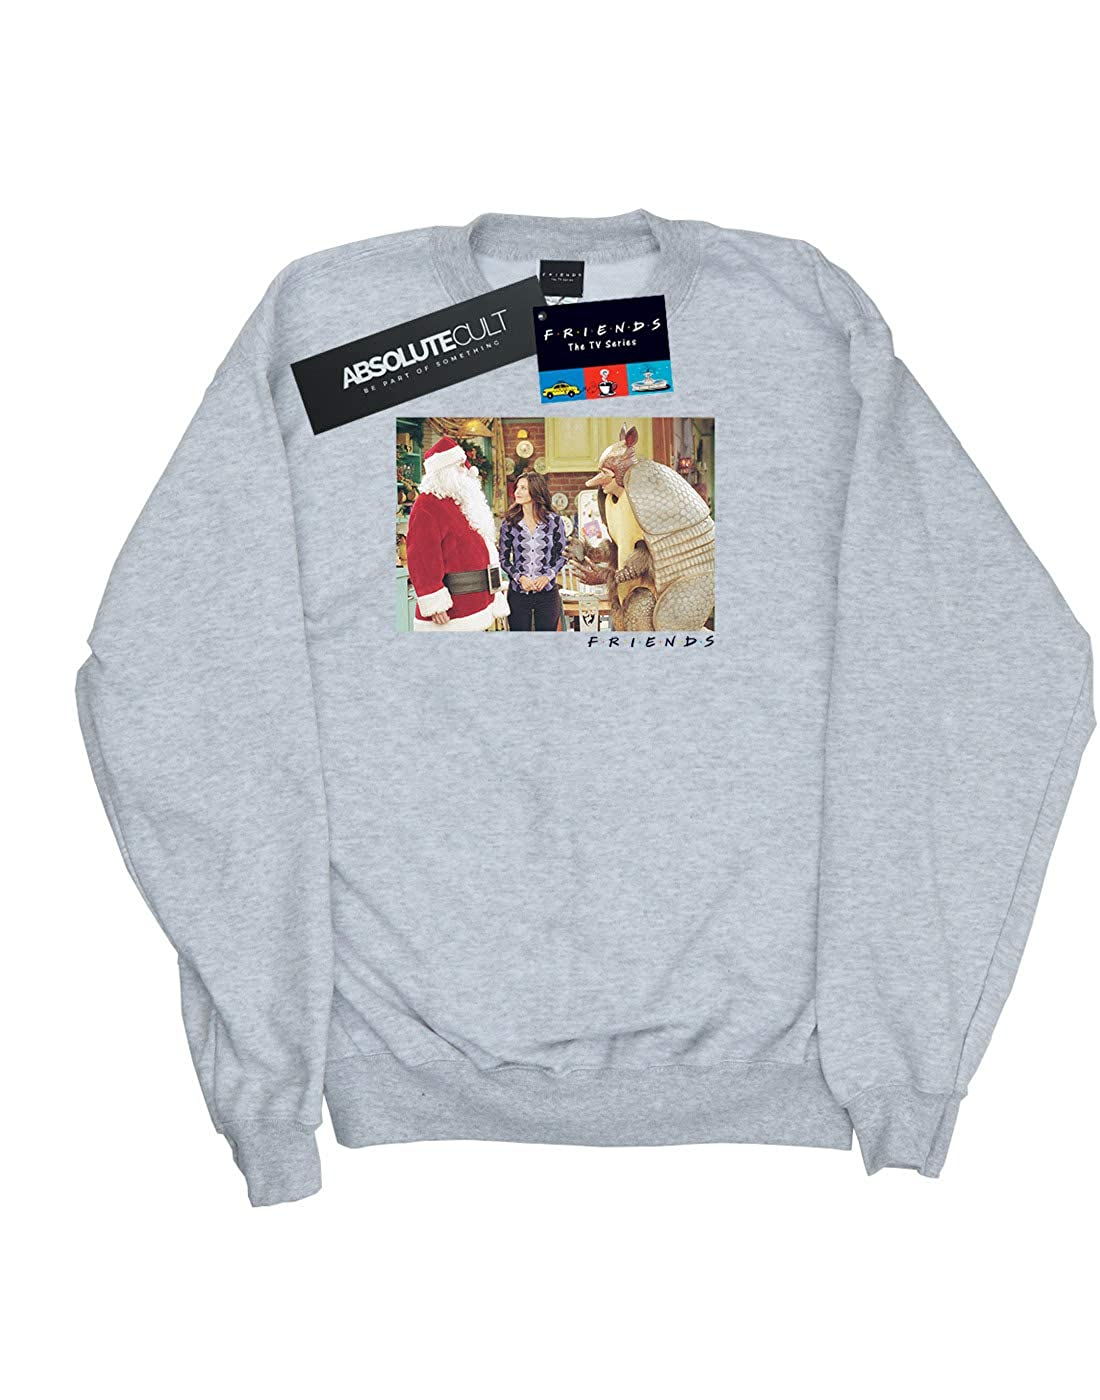 Absolute Cult Friends Girls The Holiday Armadillo Sweatshirt